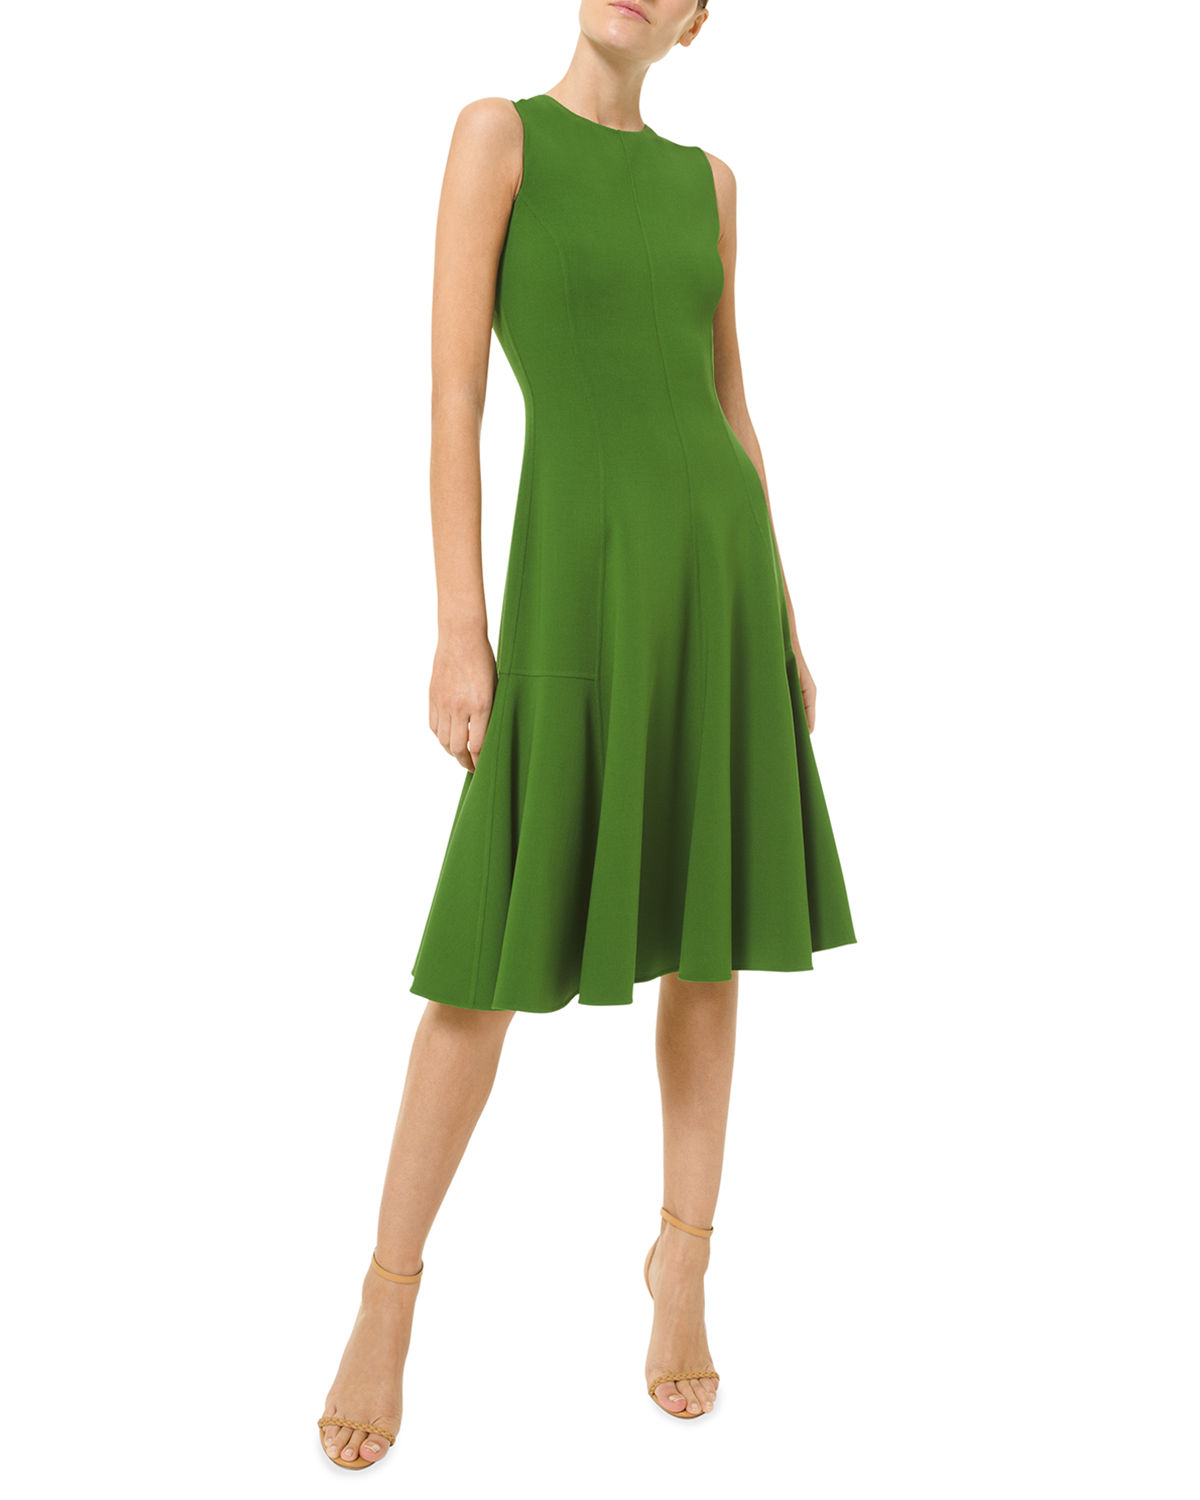 Michael Kors FIT-&-FLARE WOOL-BLEND DRESS